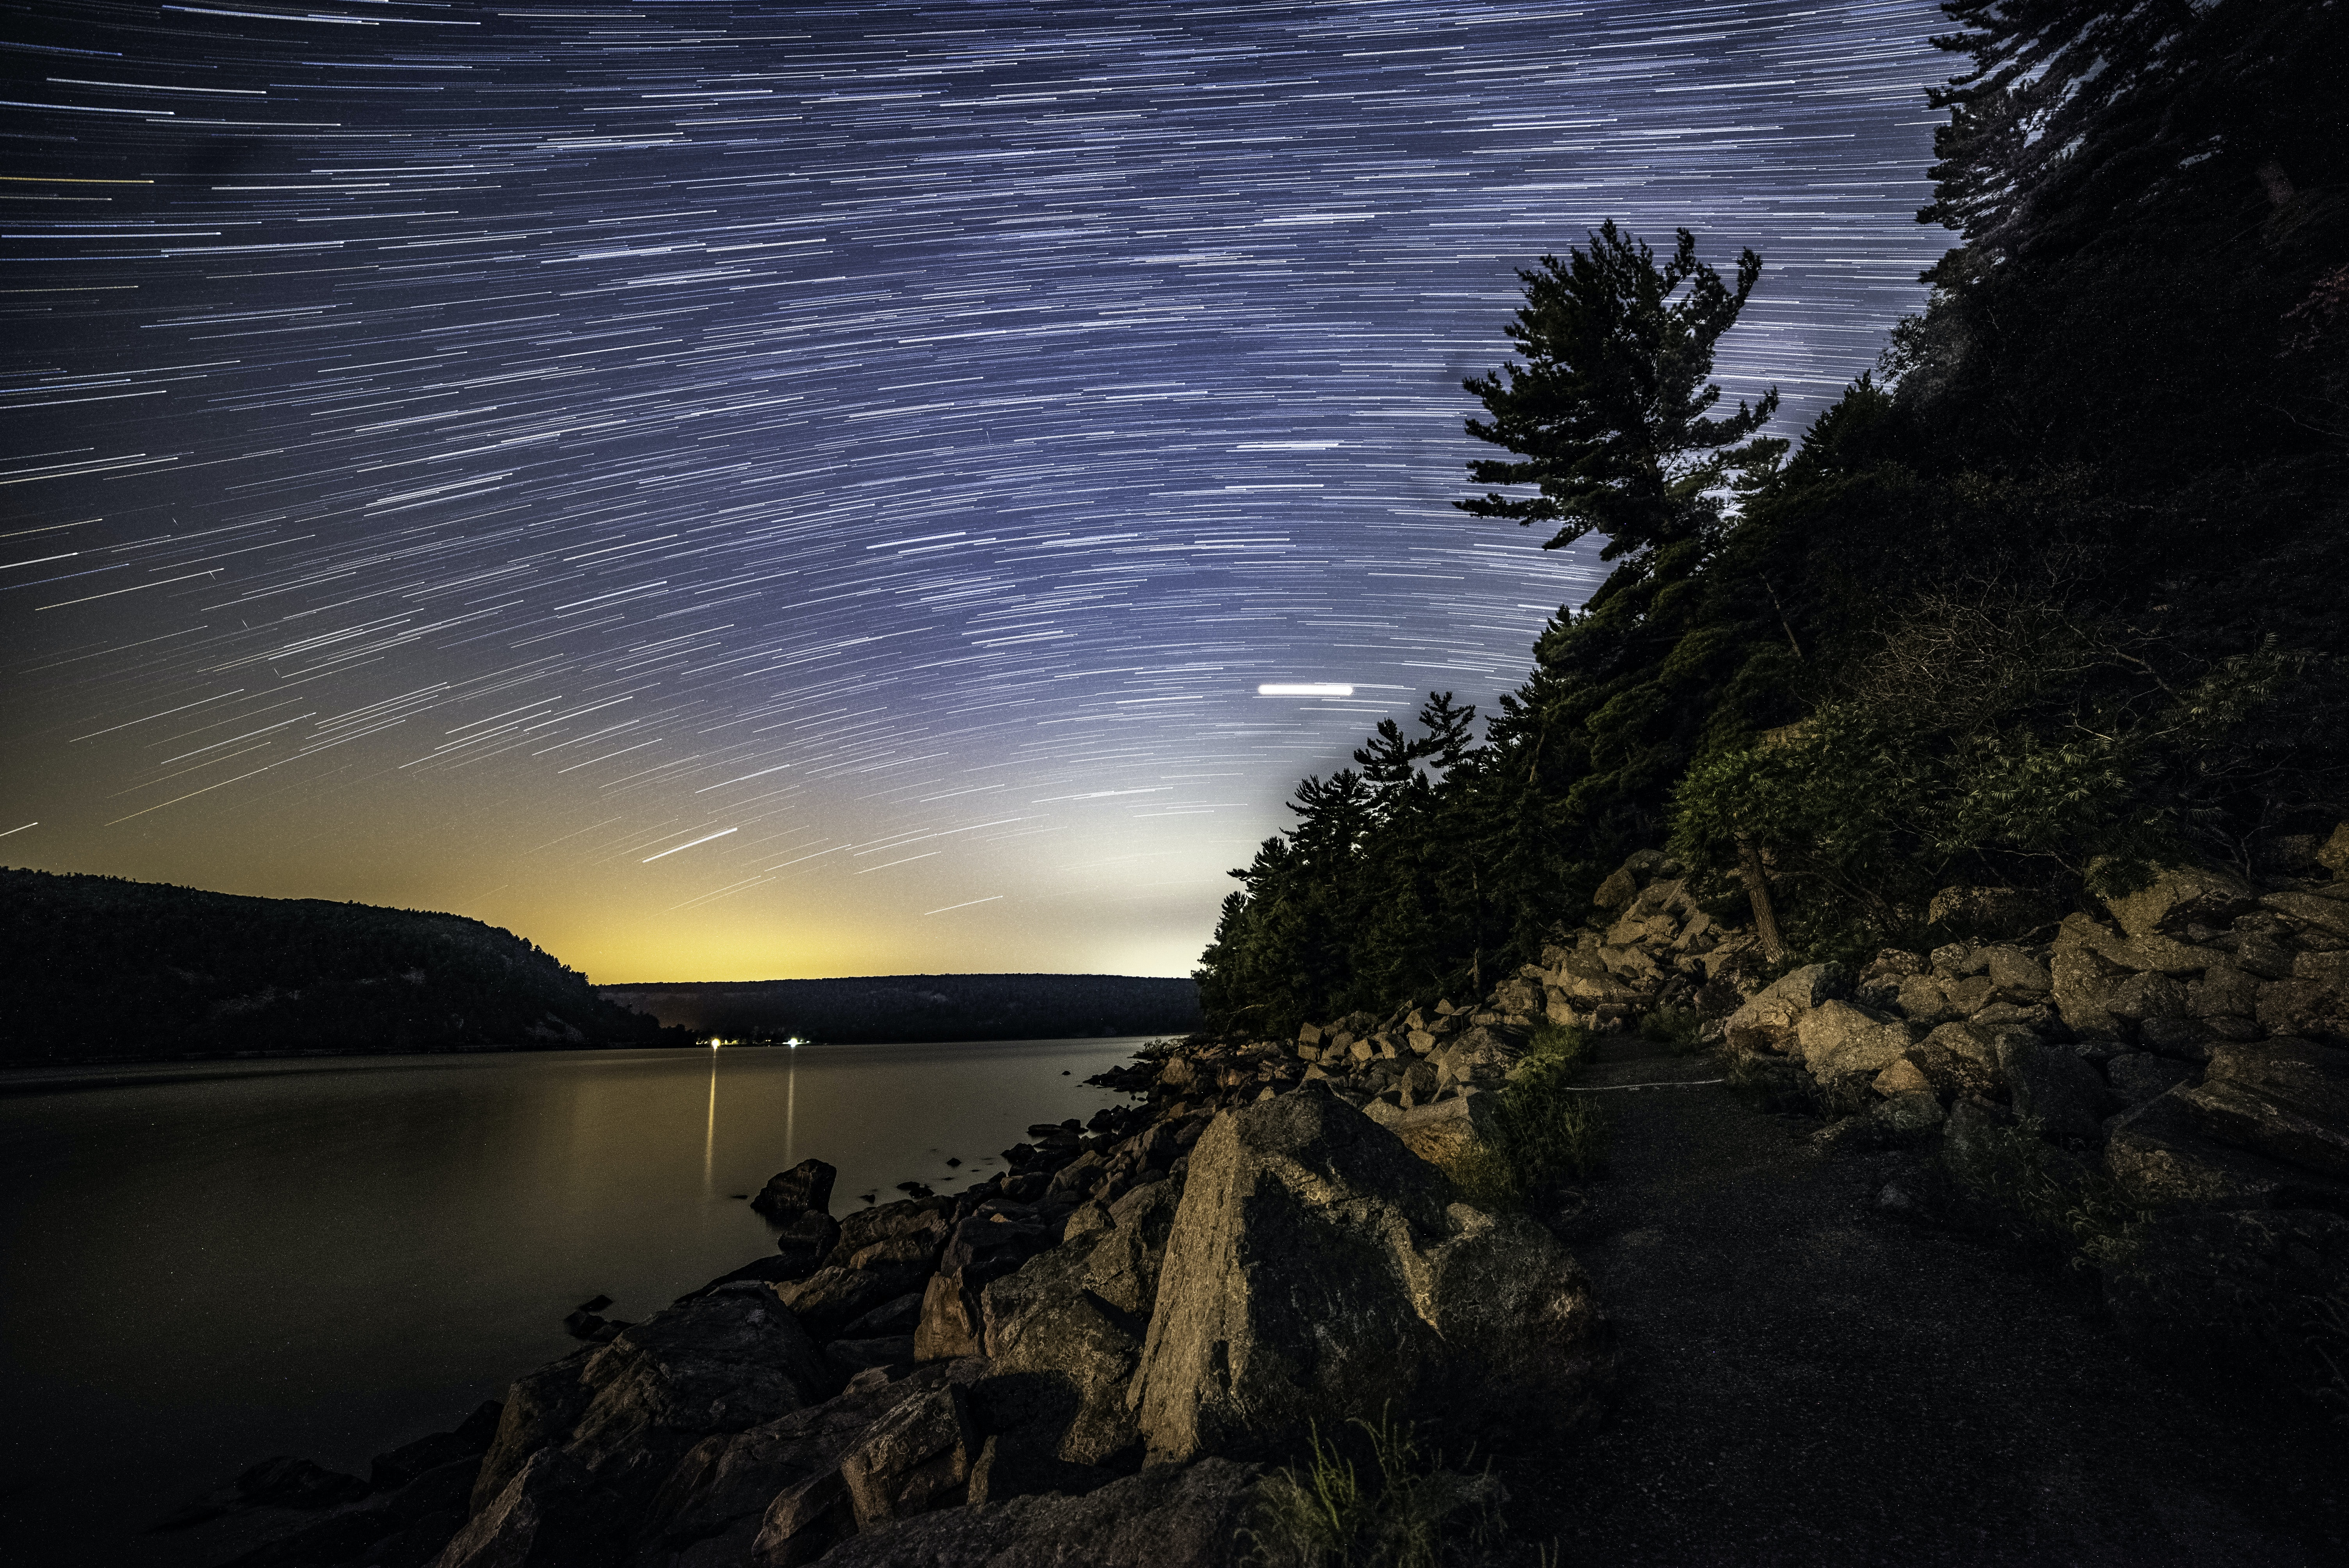 time-lapse photography of stars above body of water